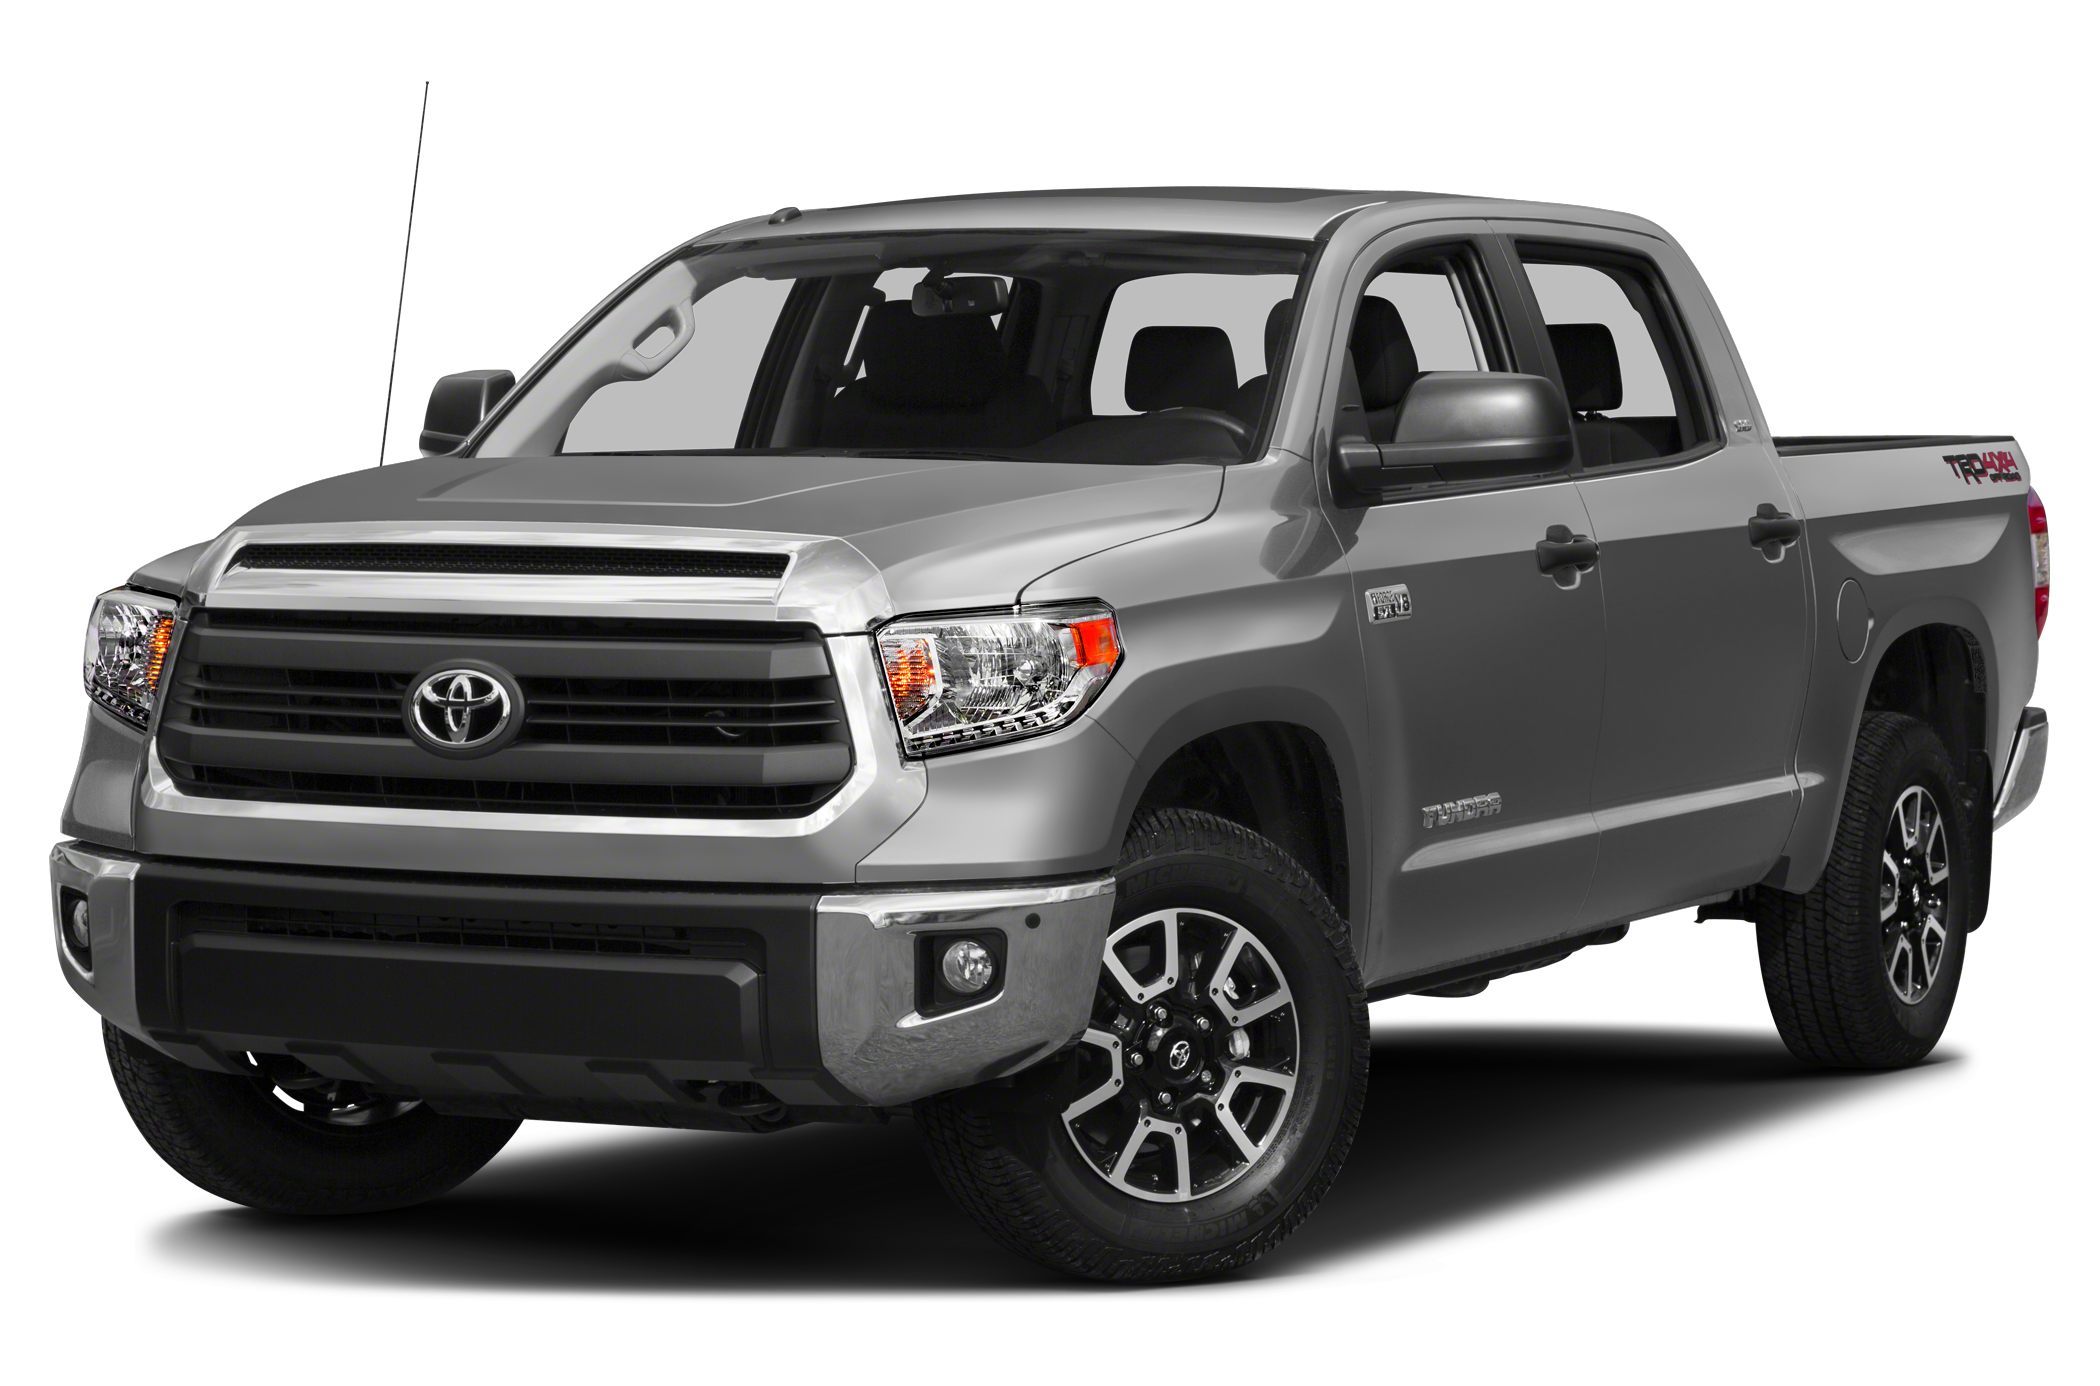 2016 Toyota Tundra Sr5 4 6l V8 4x4 Crewmax 5 6 Ft Box 145 7 In Wb Specs And Prices